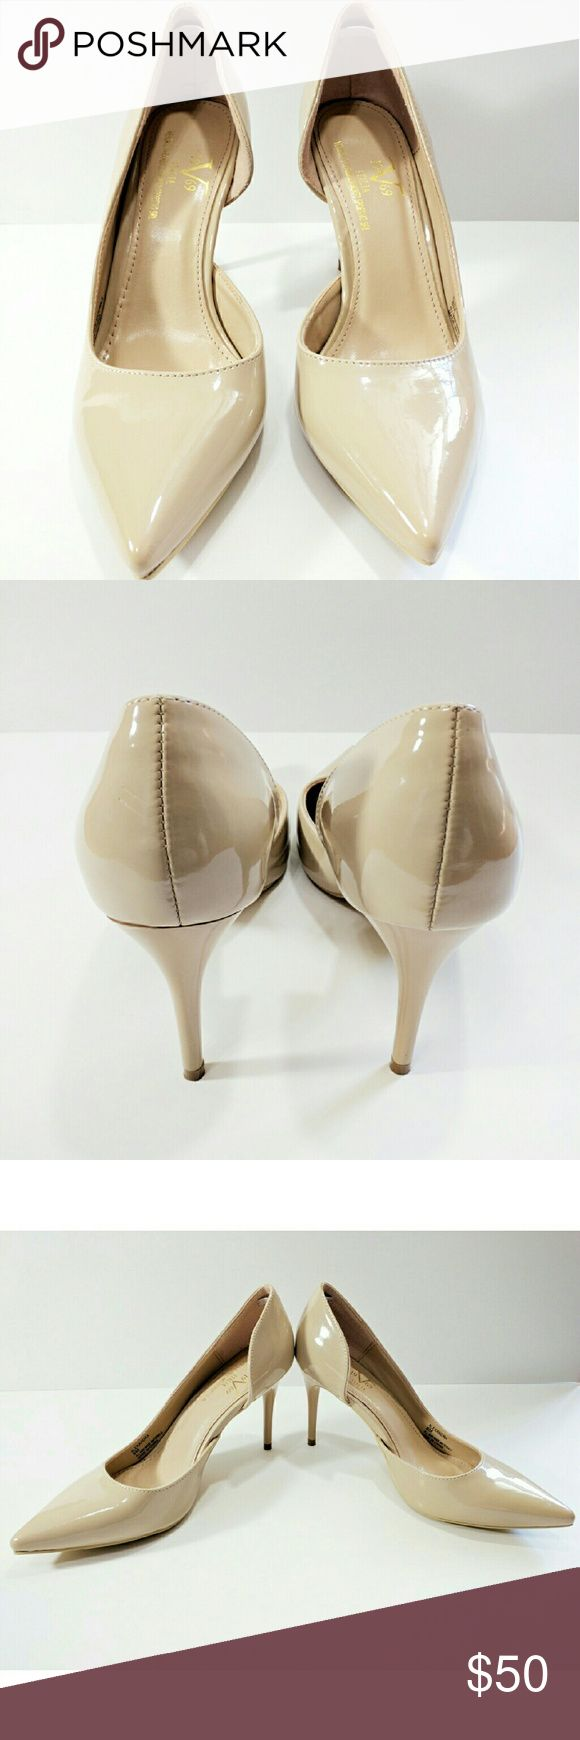 "Versace 19-69 Italia 3 1/2"" heels Great Condition! An elegant pair of glossy light tan or beige Versace 19-69 Italia Abbigliamento Sportivo SRL pumps  with pointed toe and arch cut-out not easy to find because most stores have discontinued or sold out of them. Versace Italia 19-69 Shoes Heels"